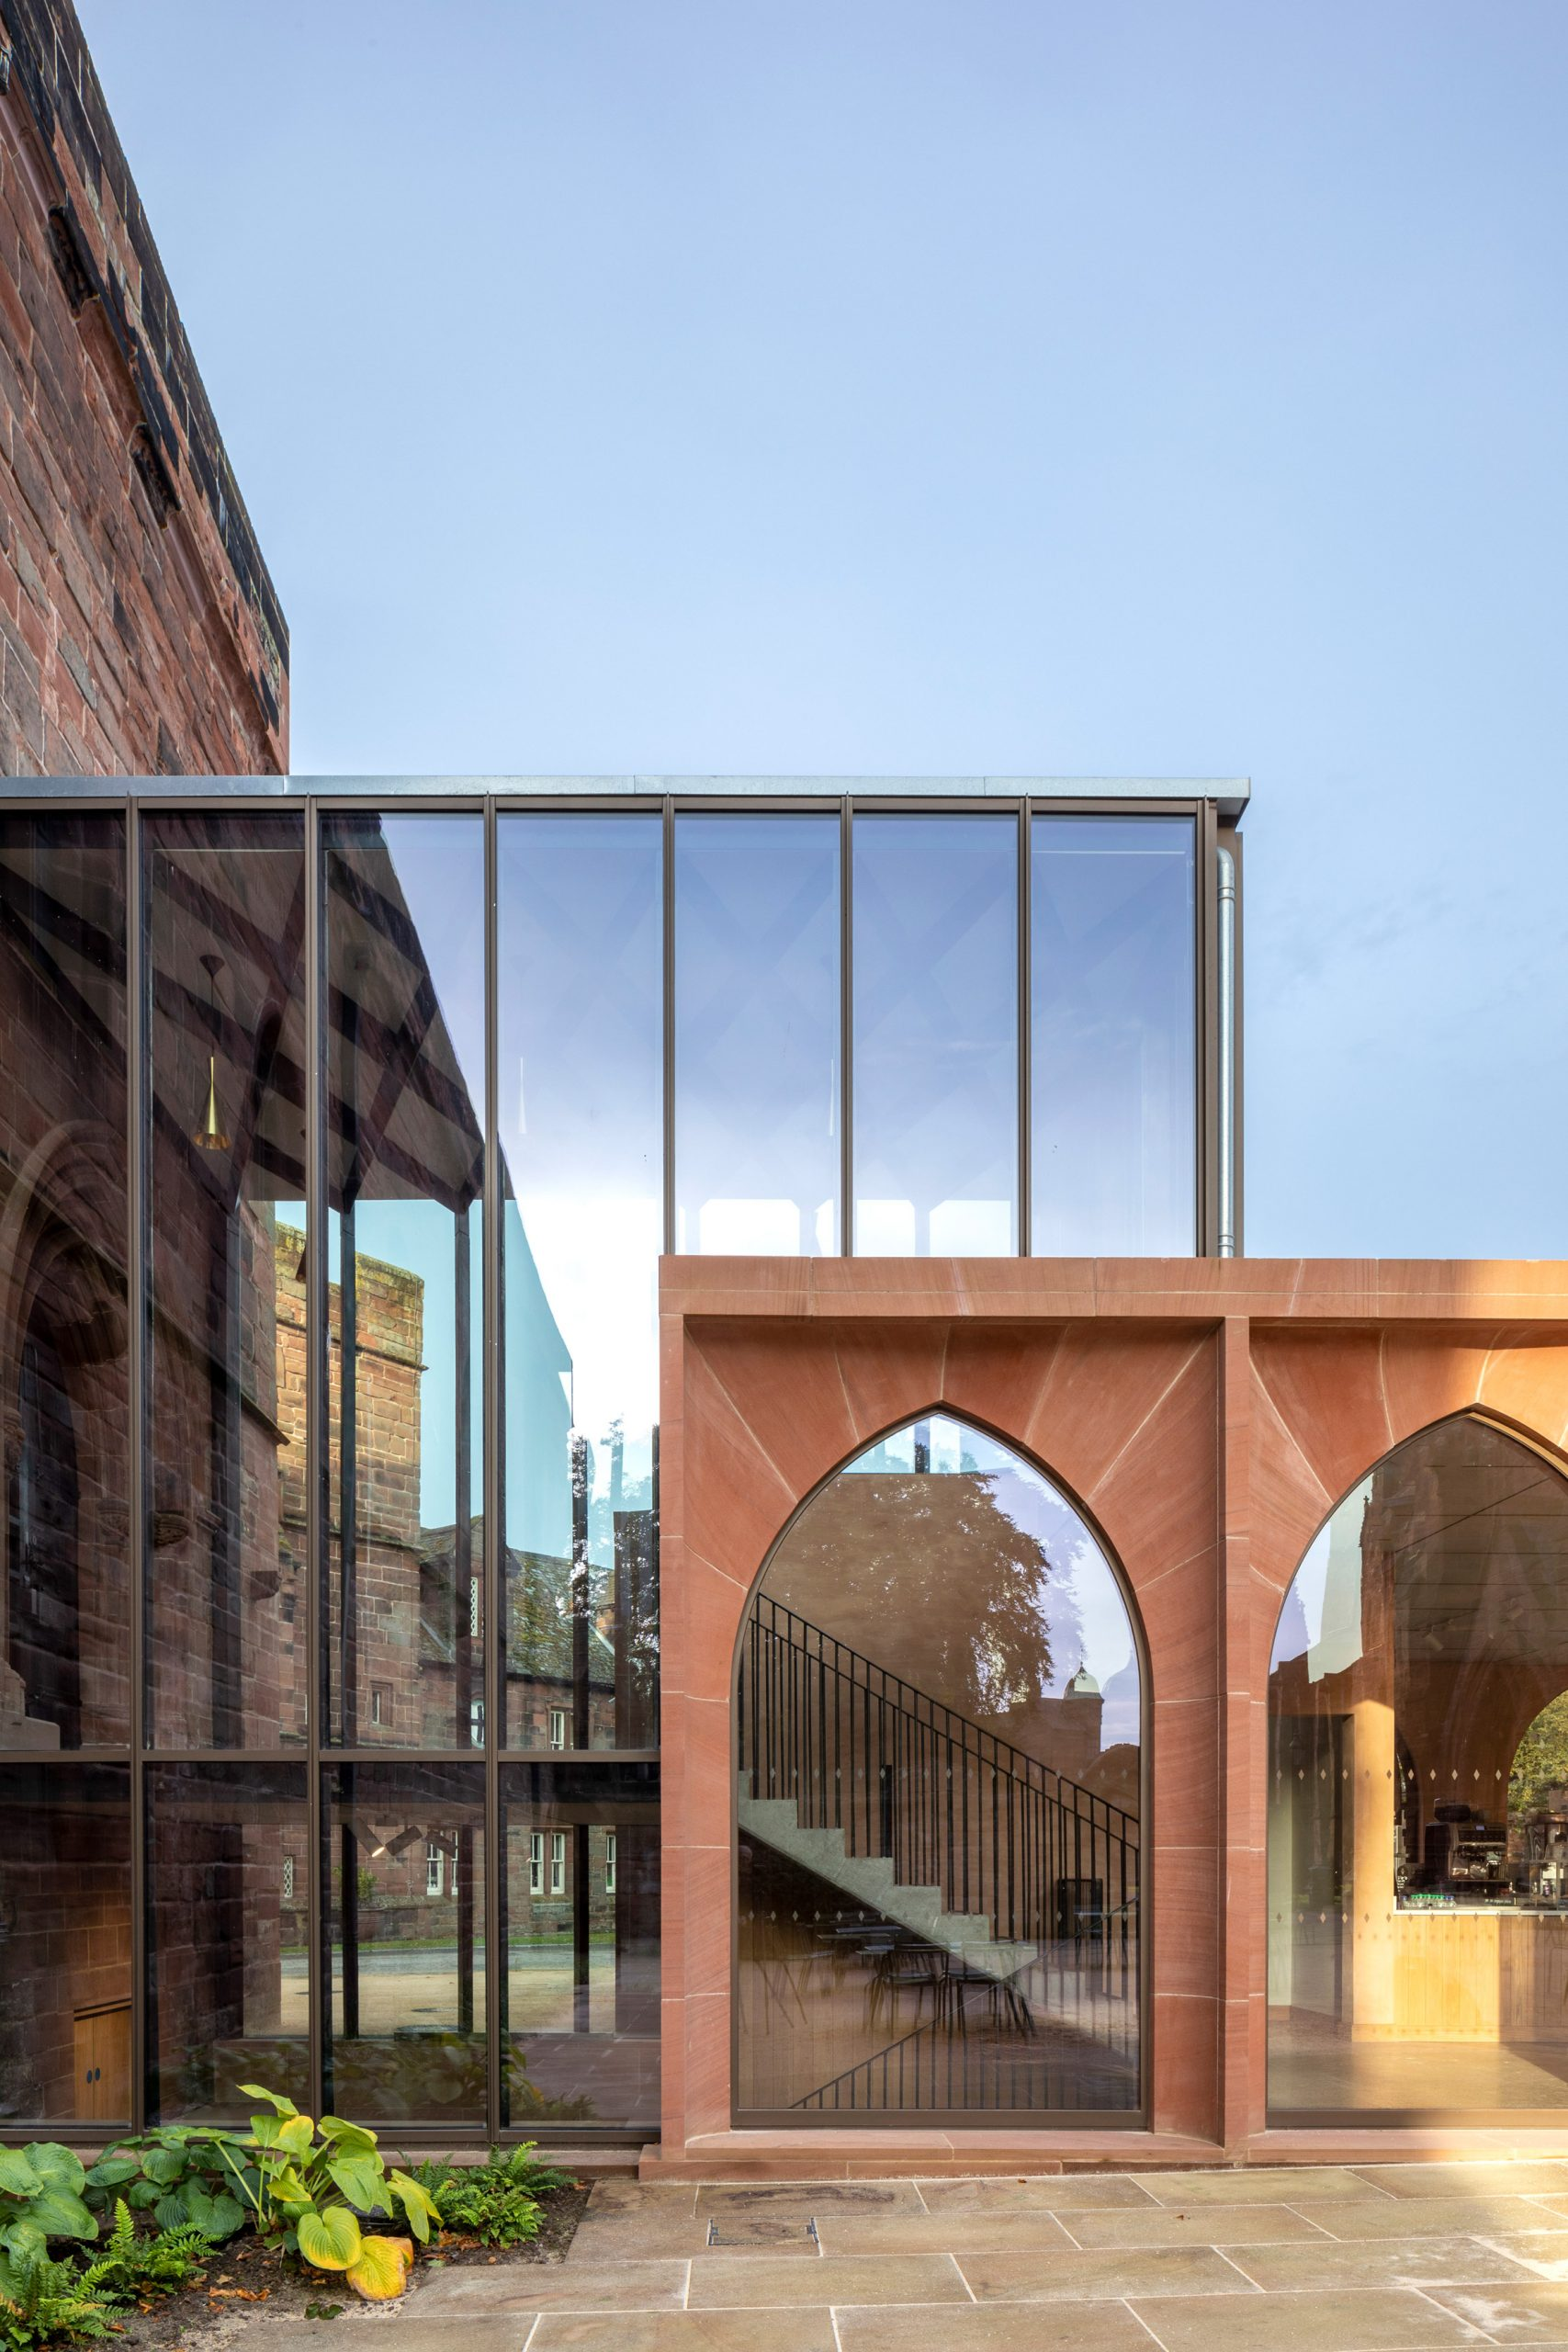 the-fratry-feilden-fowles-architecture-cultural_dezeen_2364_col_4-scaled